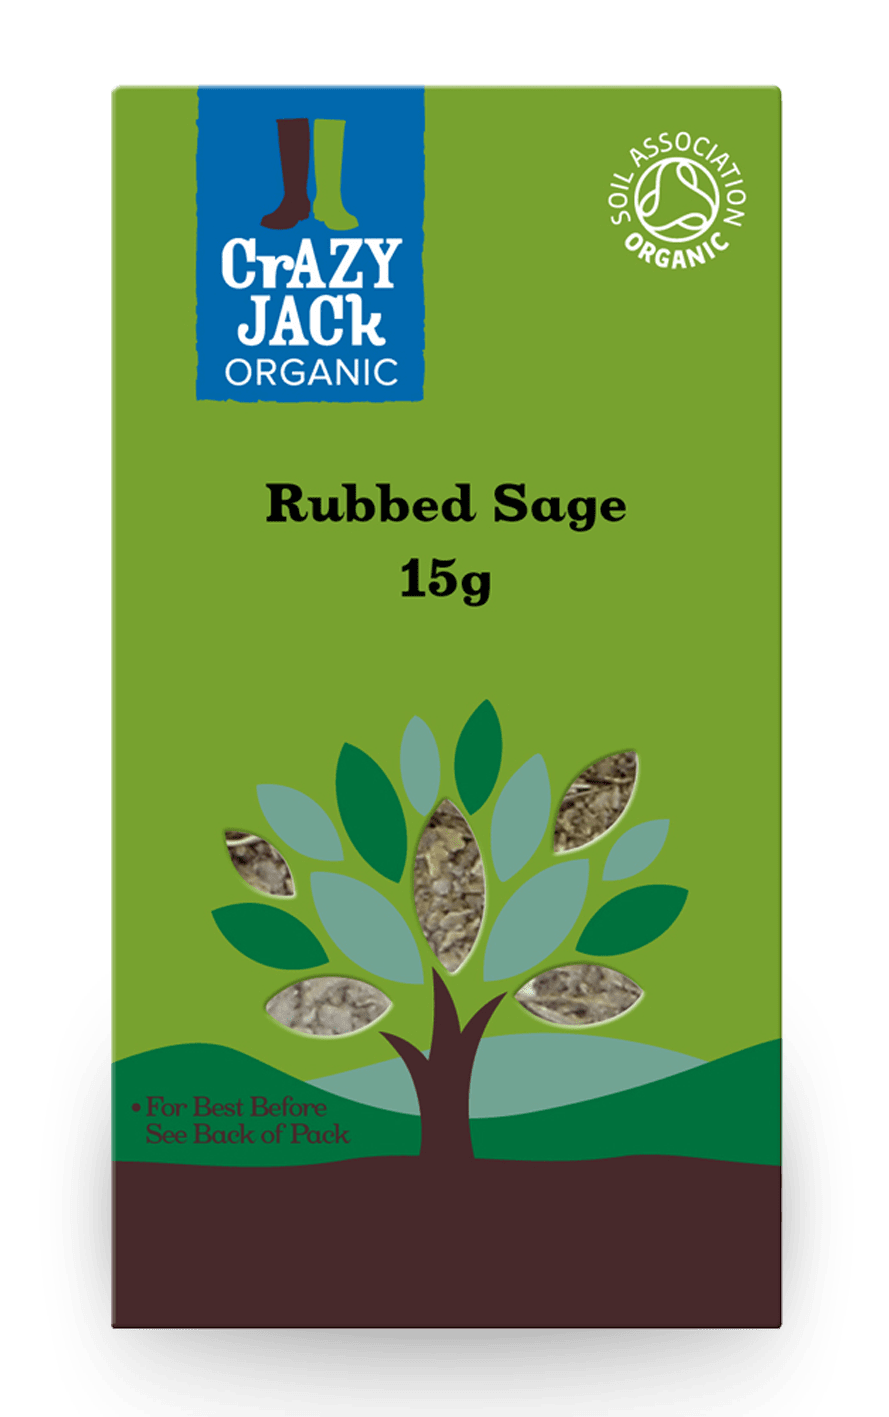 Packaging for 15g of rubbed sage